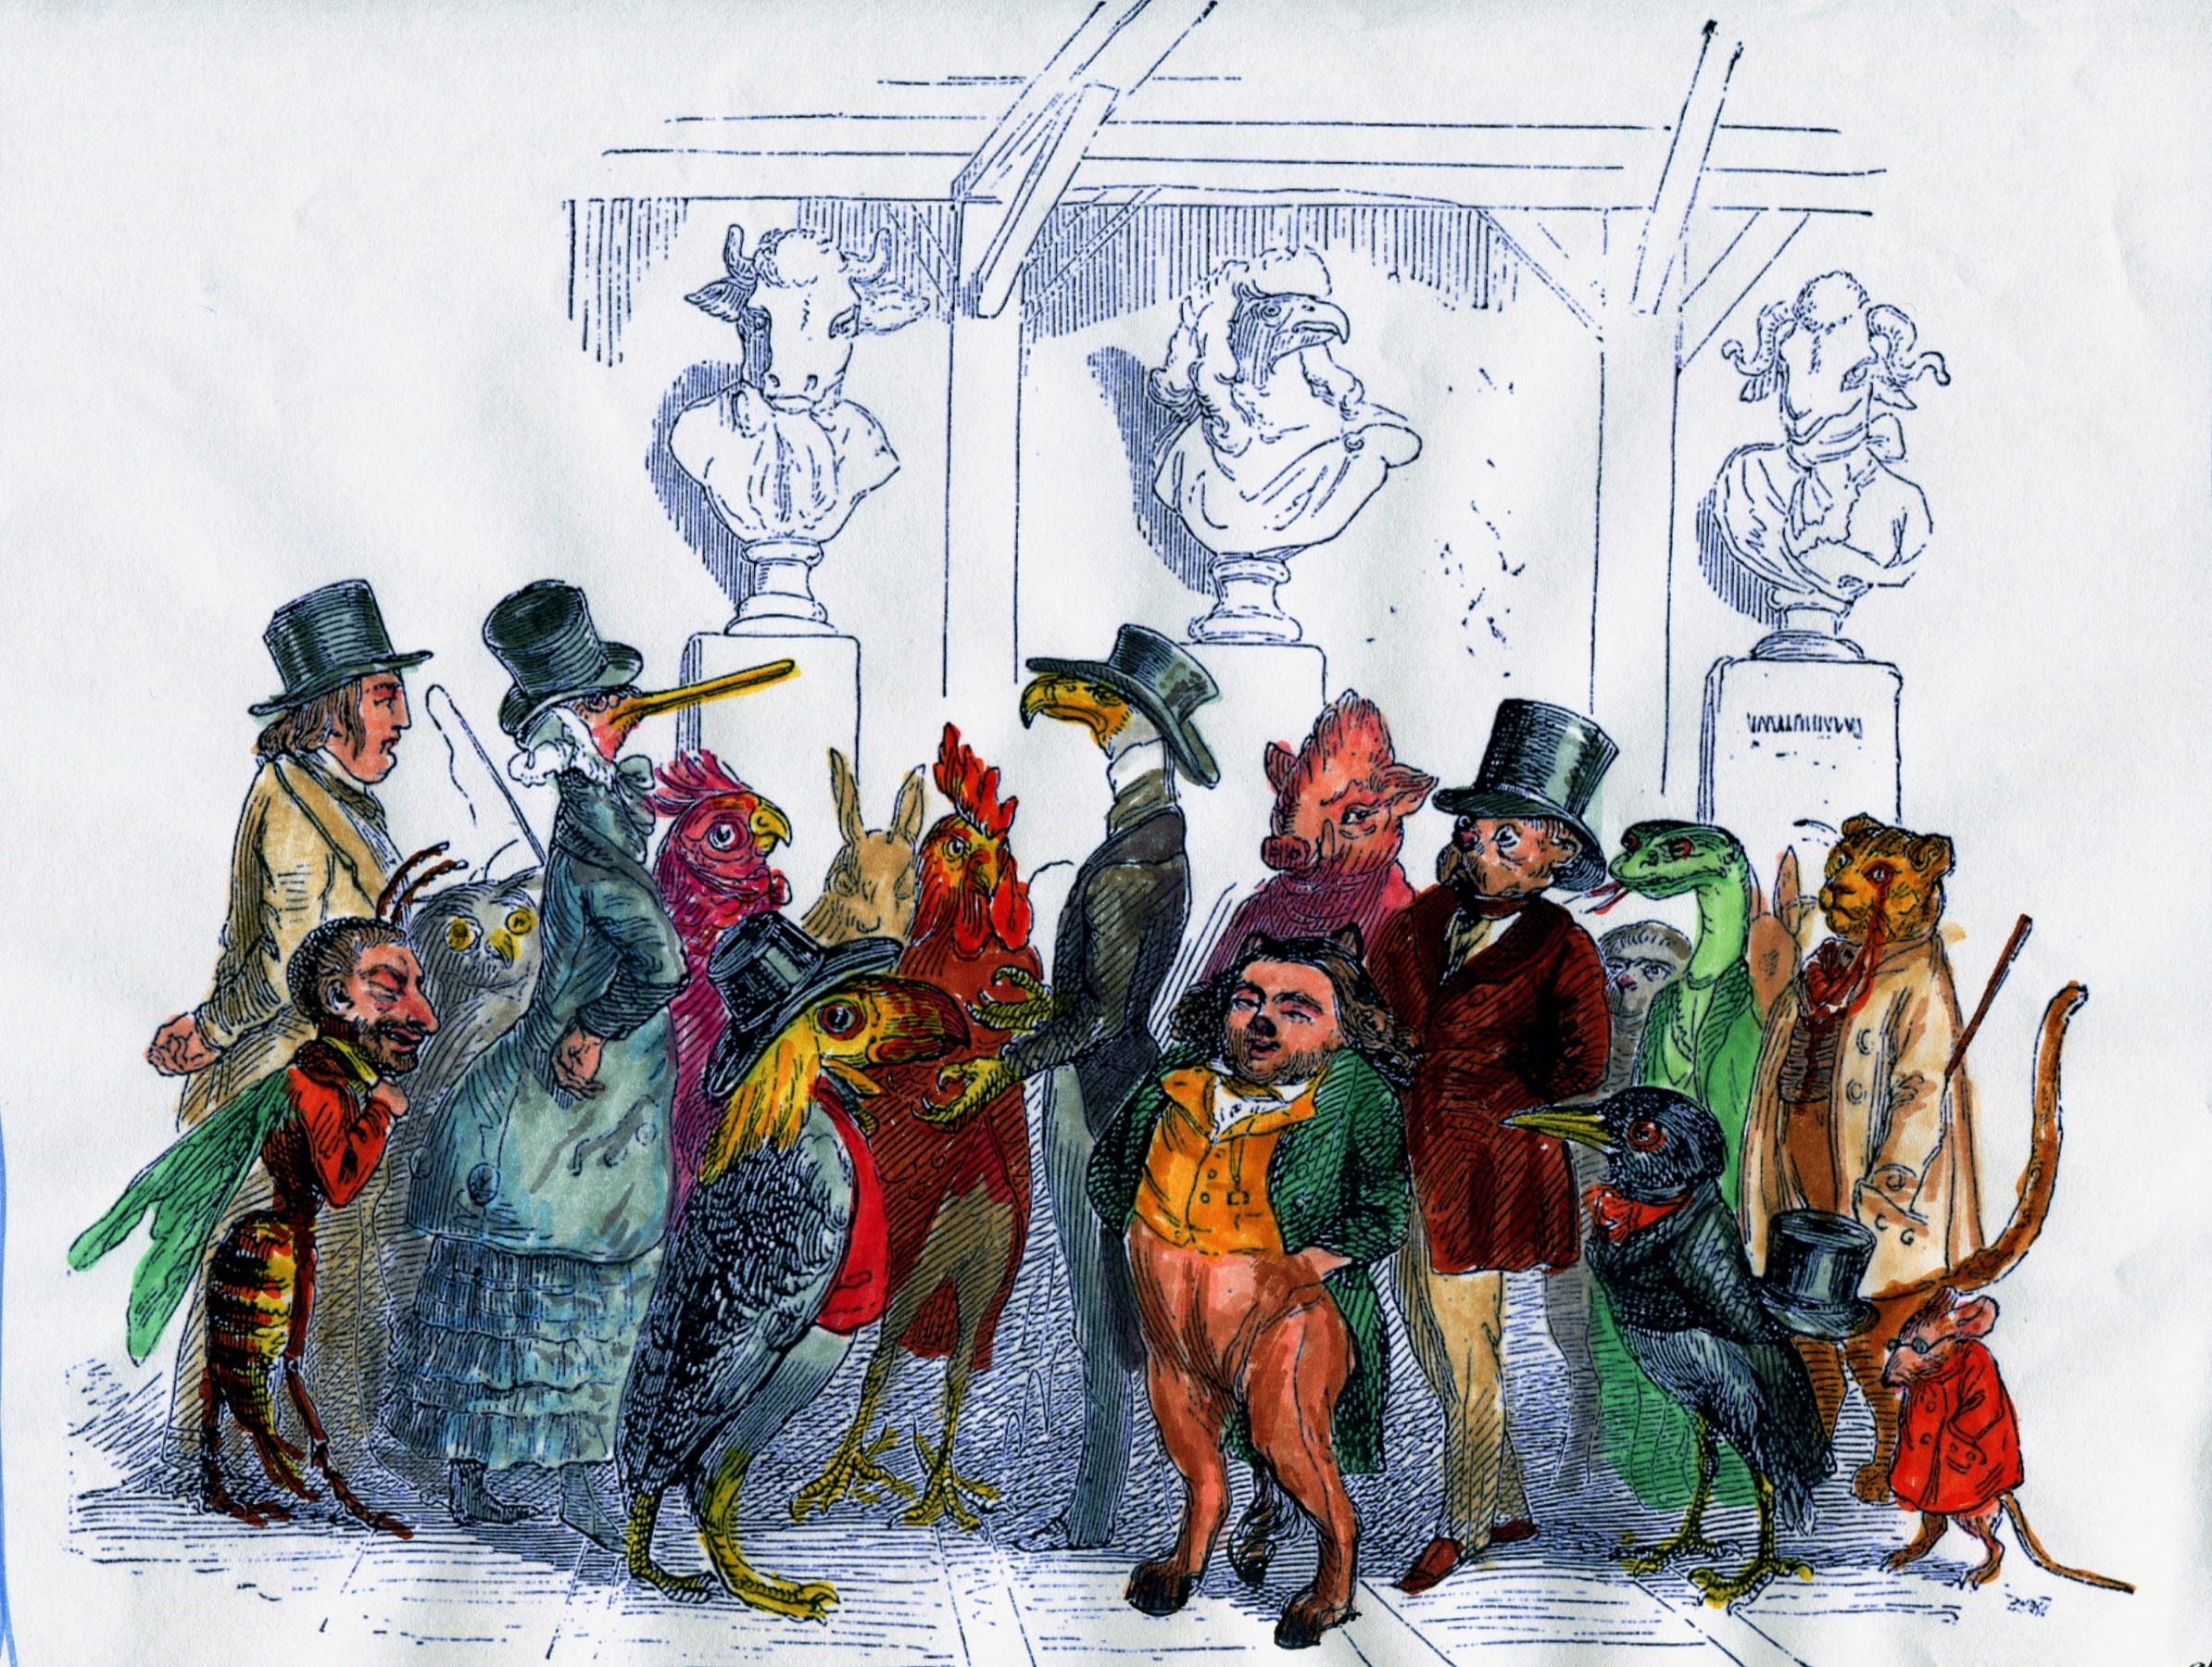 Grandville Sheeple: The American Animaux Presidential Election